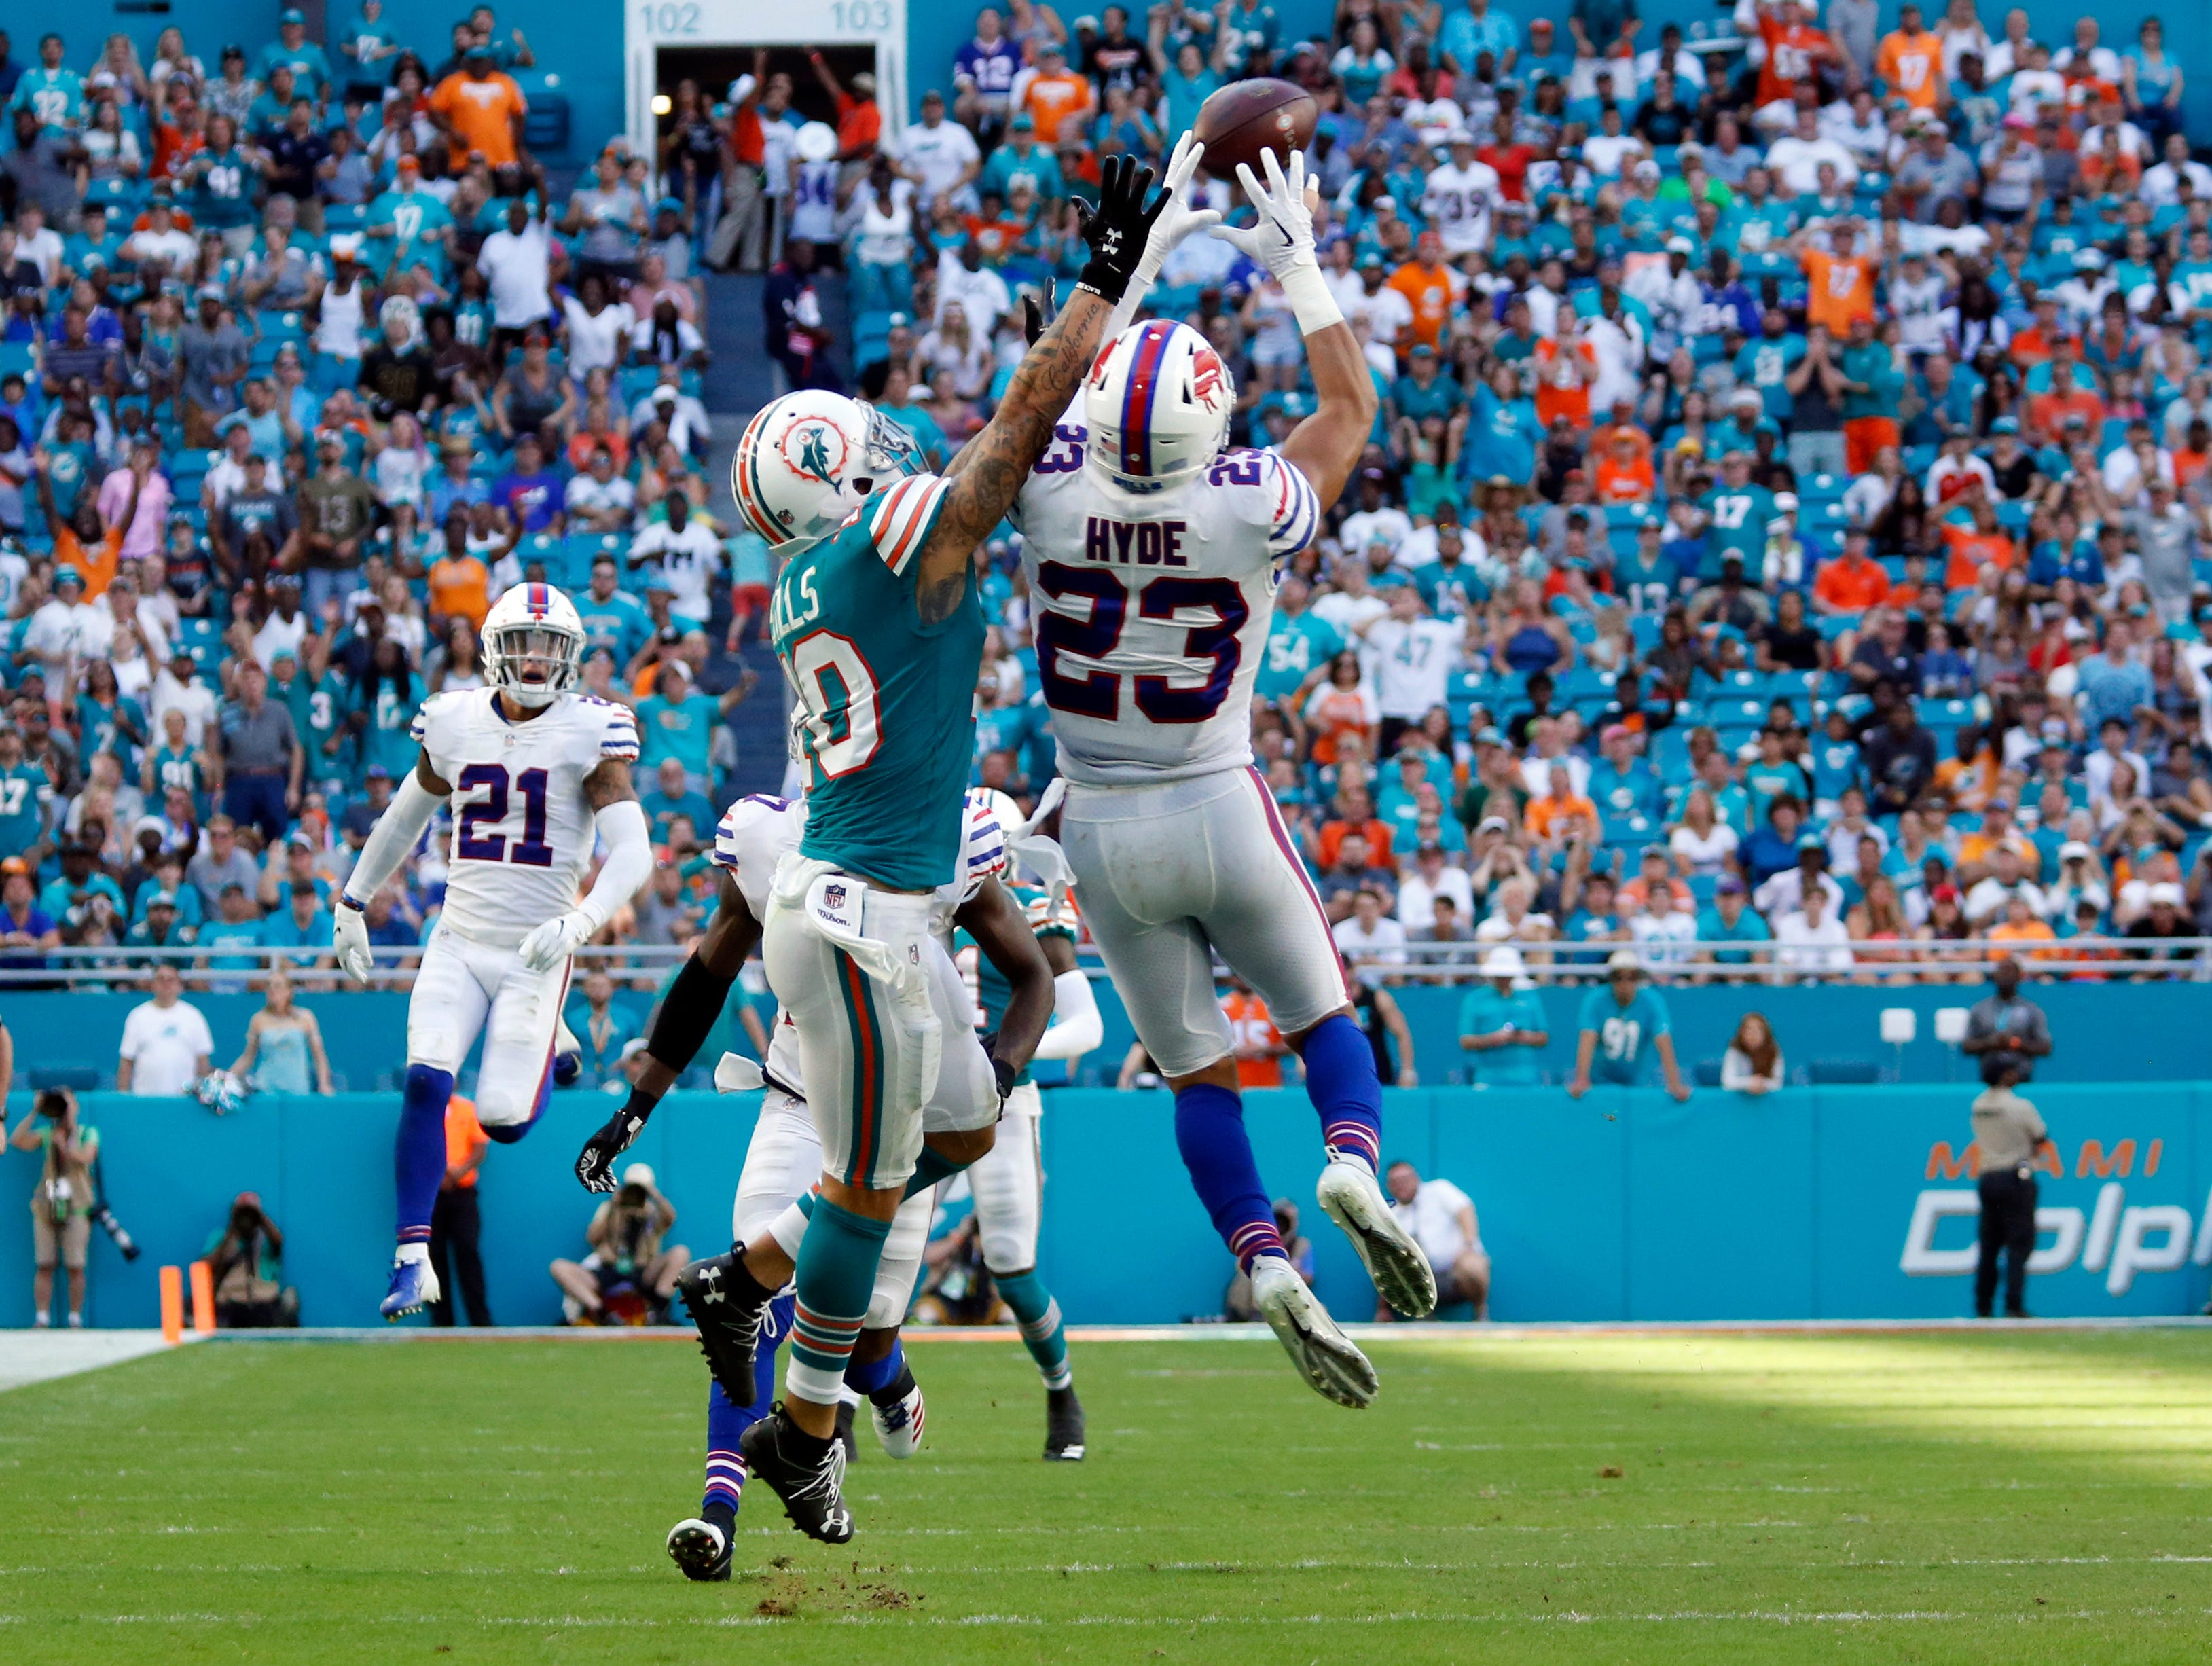 Buffalo Bills strong safety Micah Hyde (23) intercepts a pass intended for Miami Dolphins wide receiver Kenny Stills (10), during the second half of an NFL football game, Sunday, Dec. 2, 2018, in Miami Gardens, Fla. (AP Photo/Joel Auerbach)